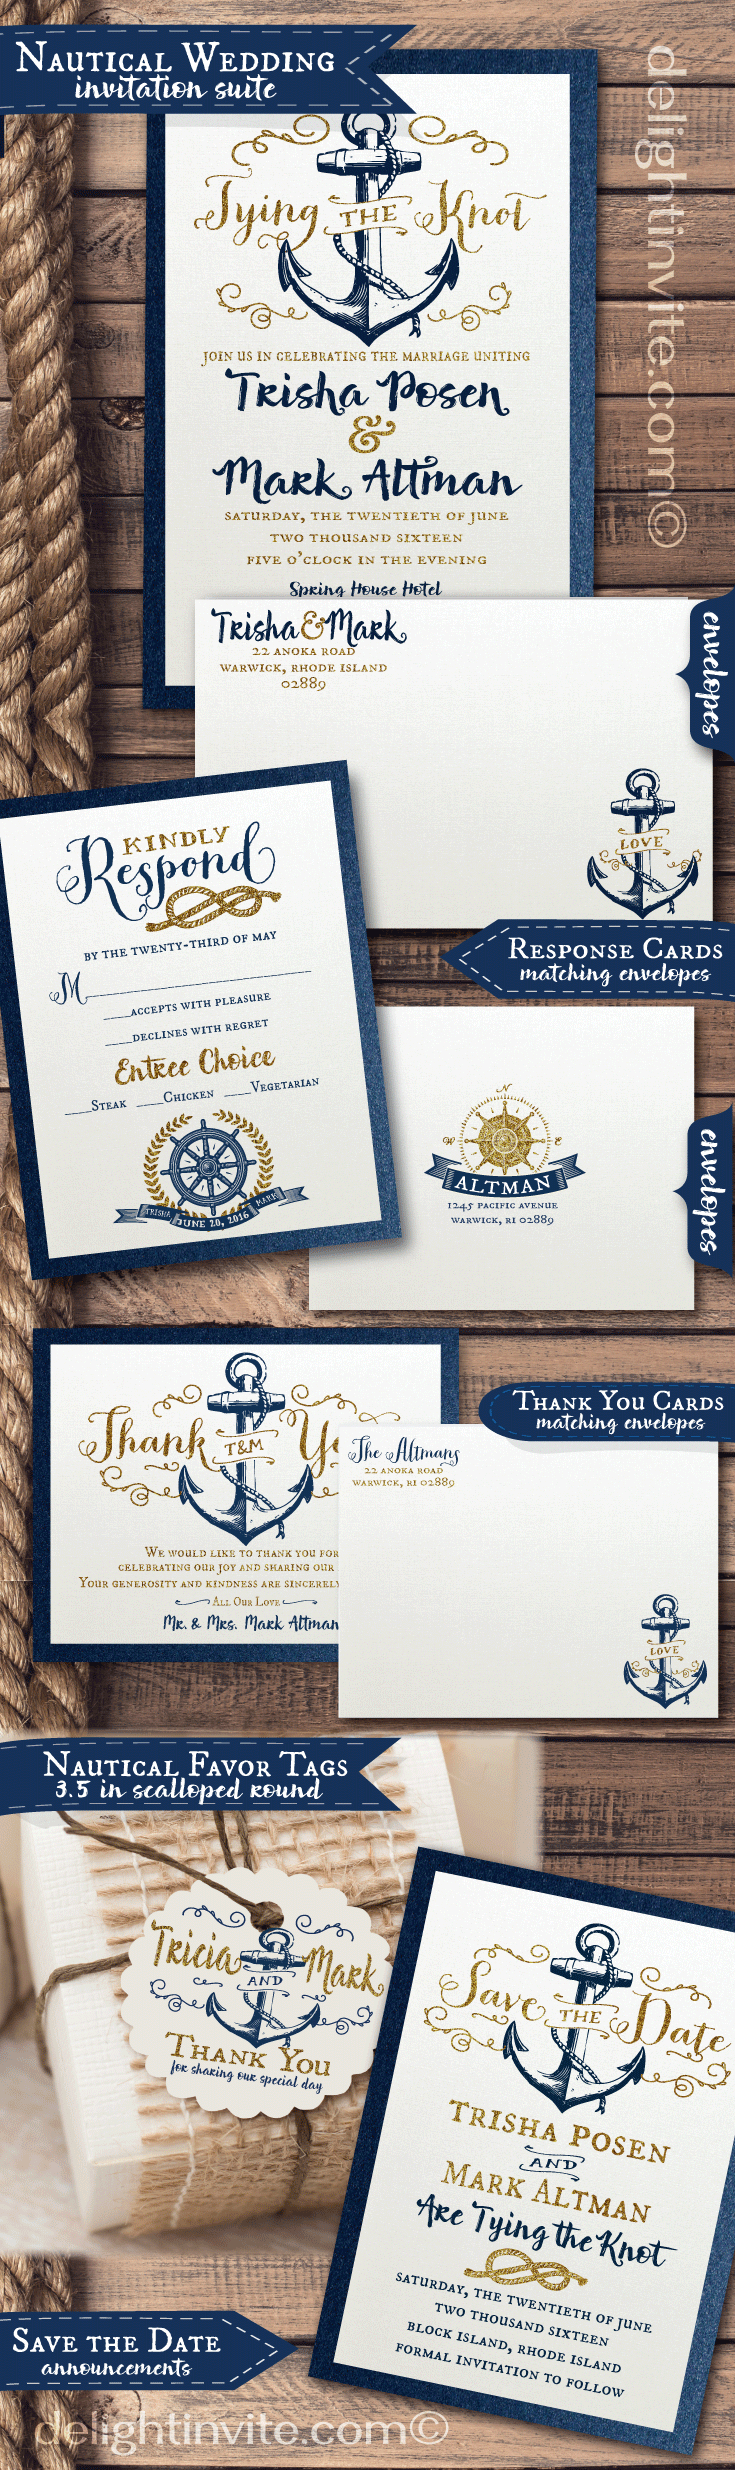 Vintage rustic nautical wedding invitation ensemble from Delight ...